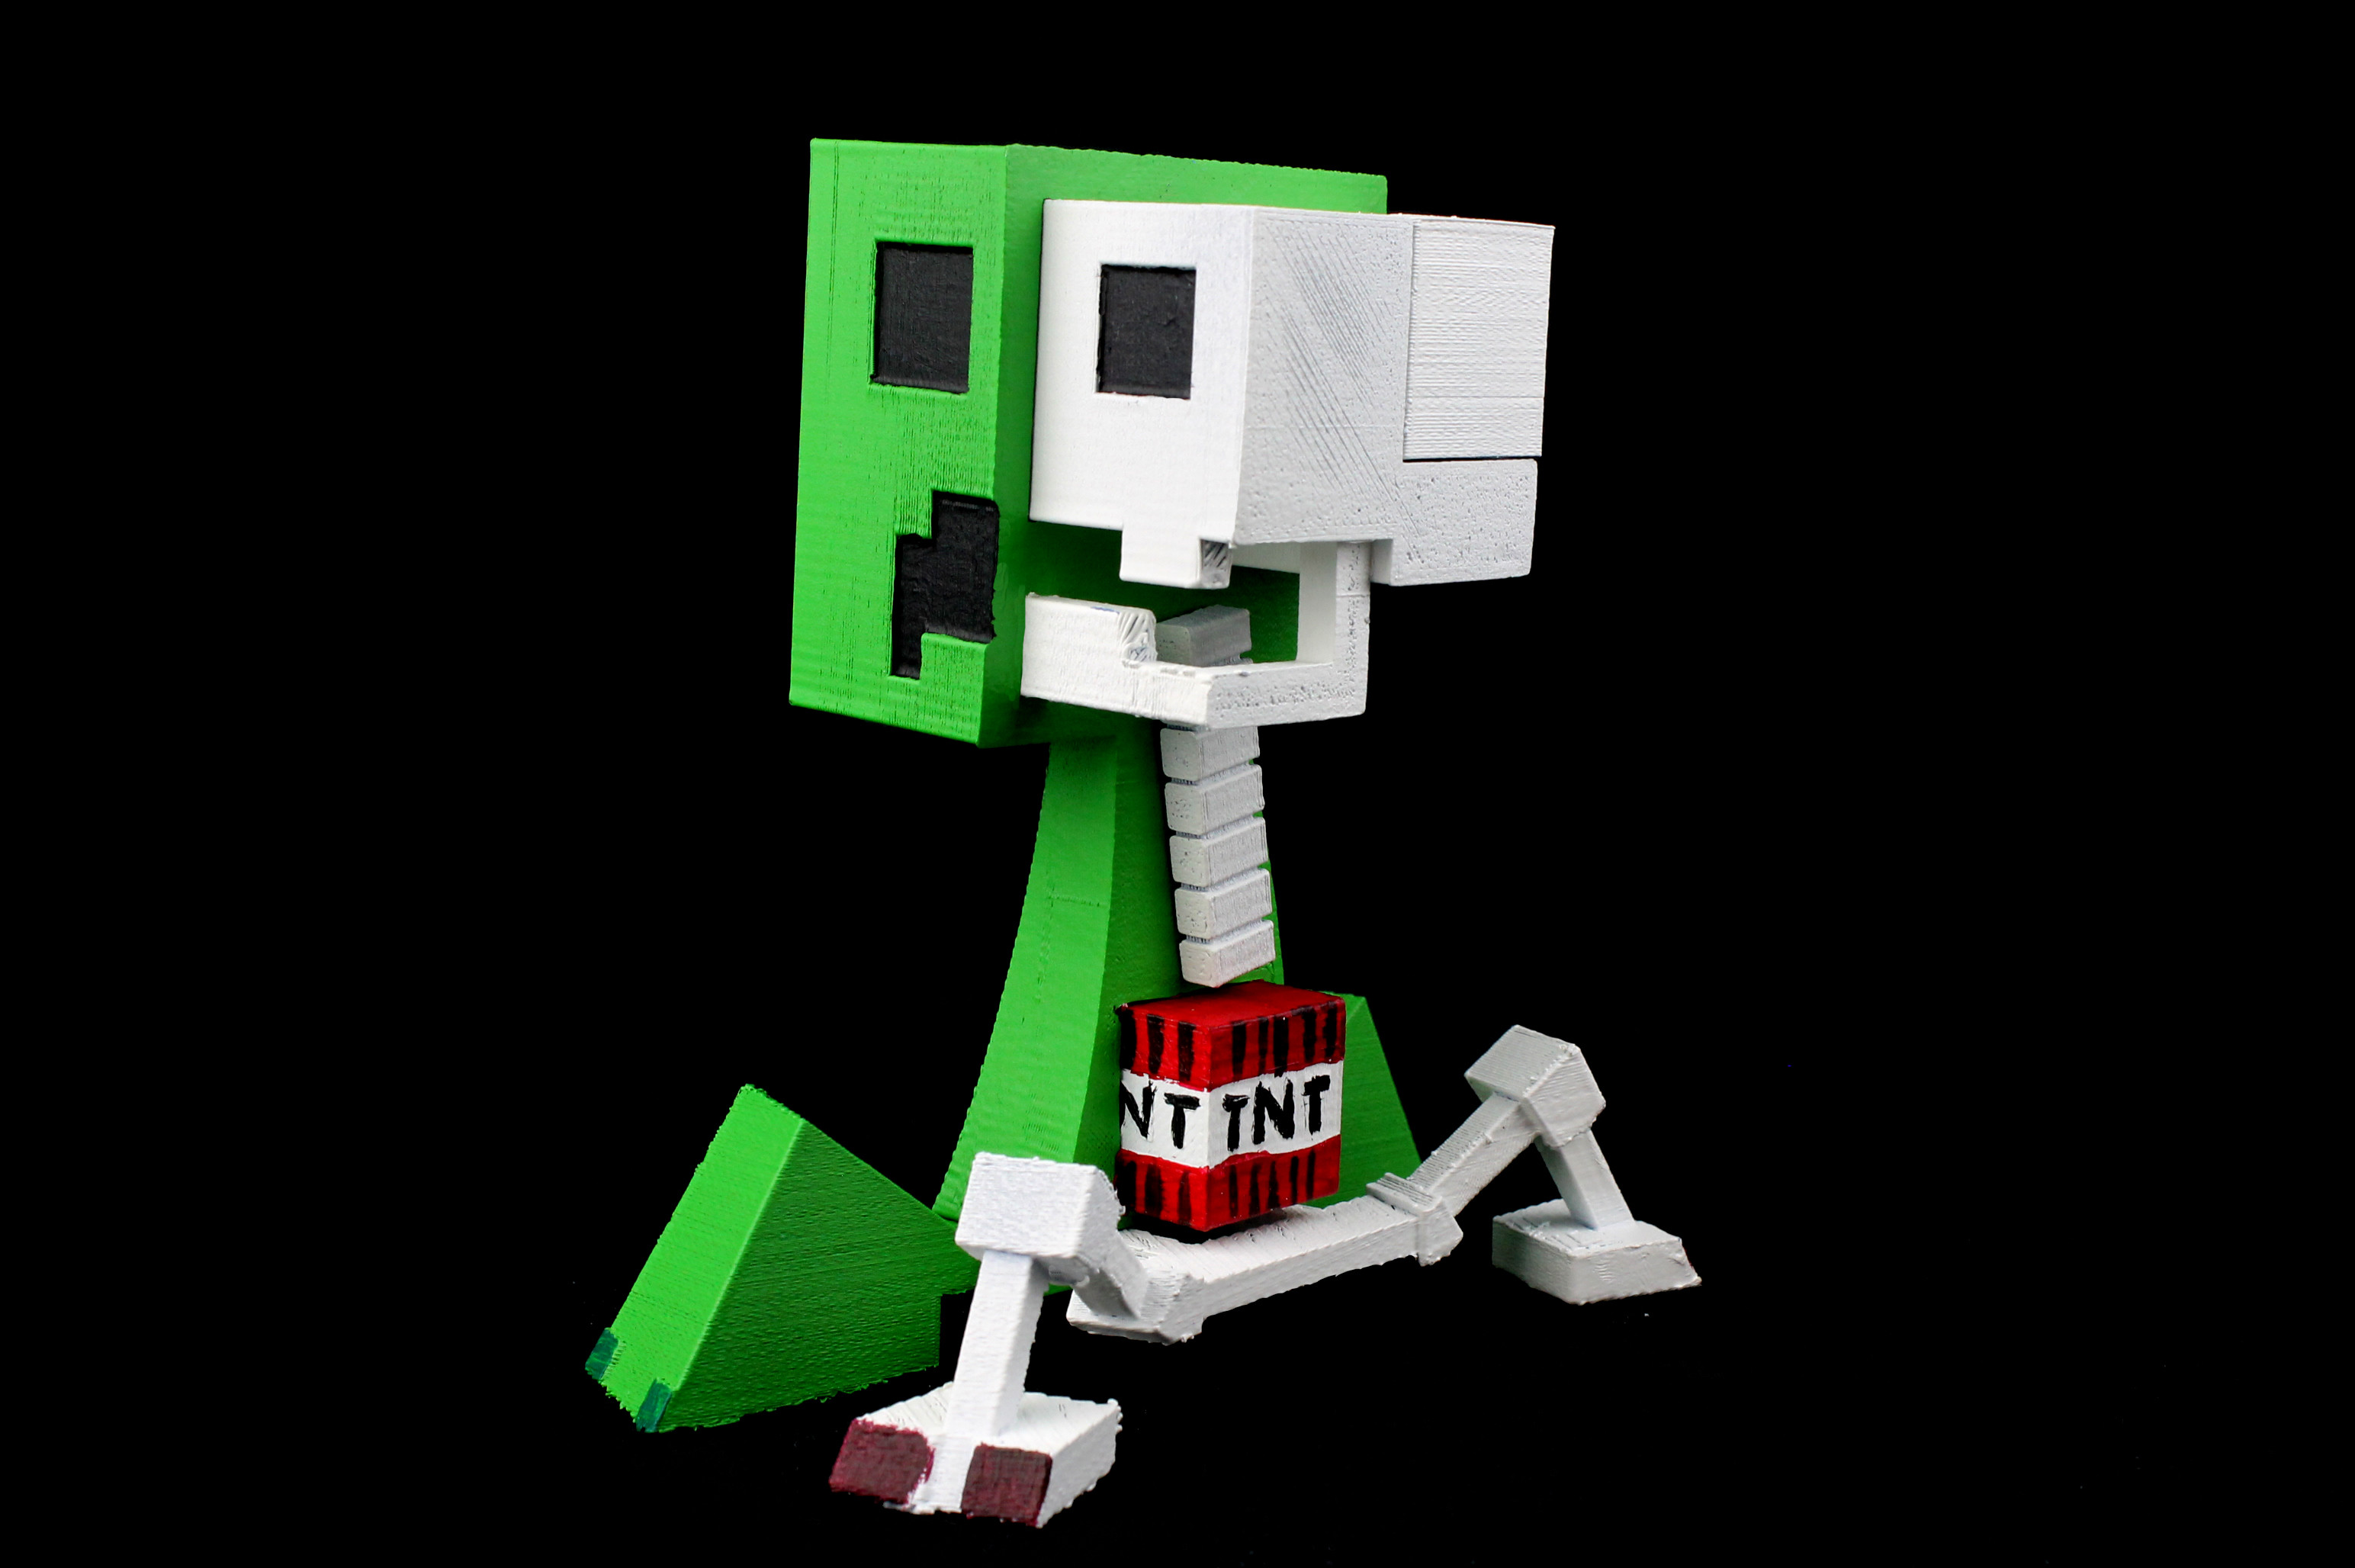 3088x2056 Minecraft creeper anatomy wallpapers